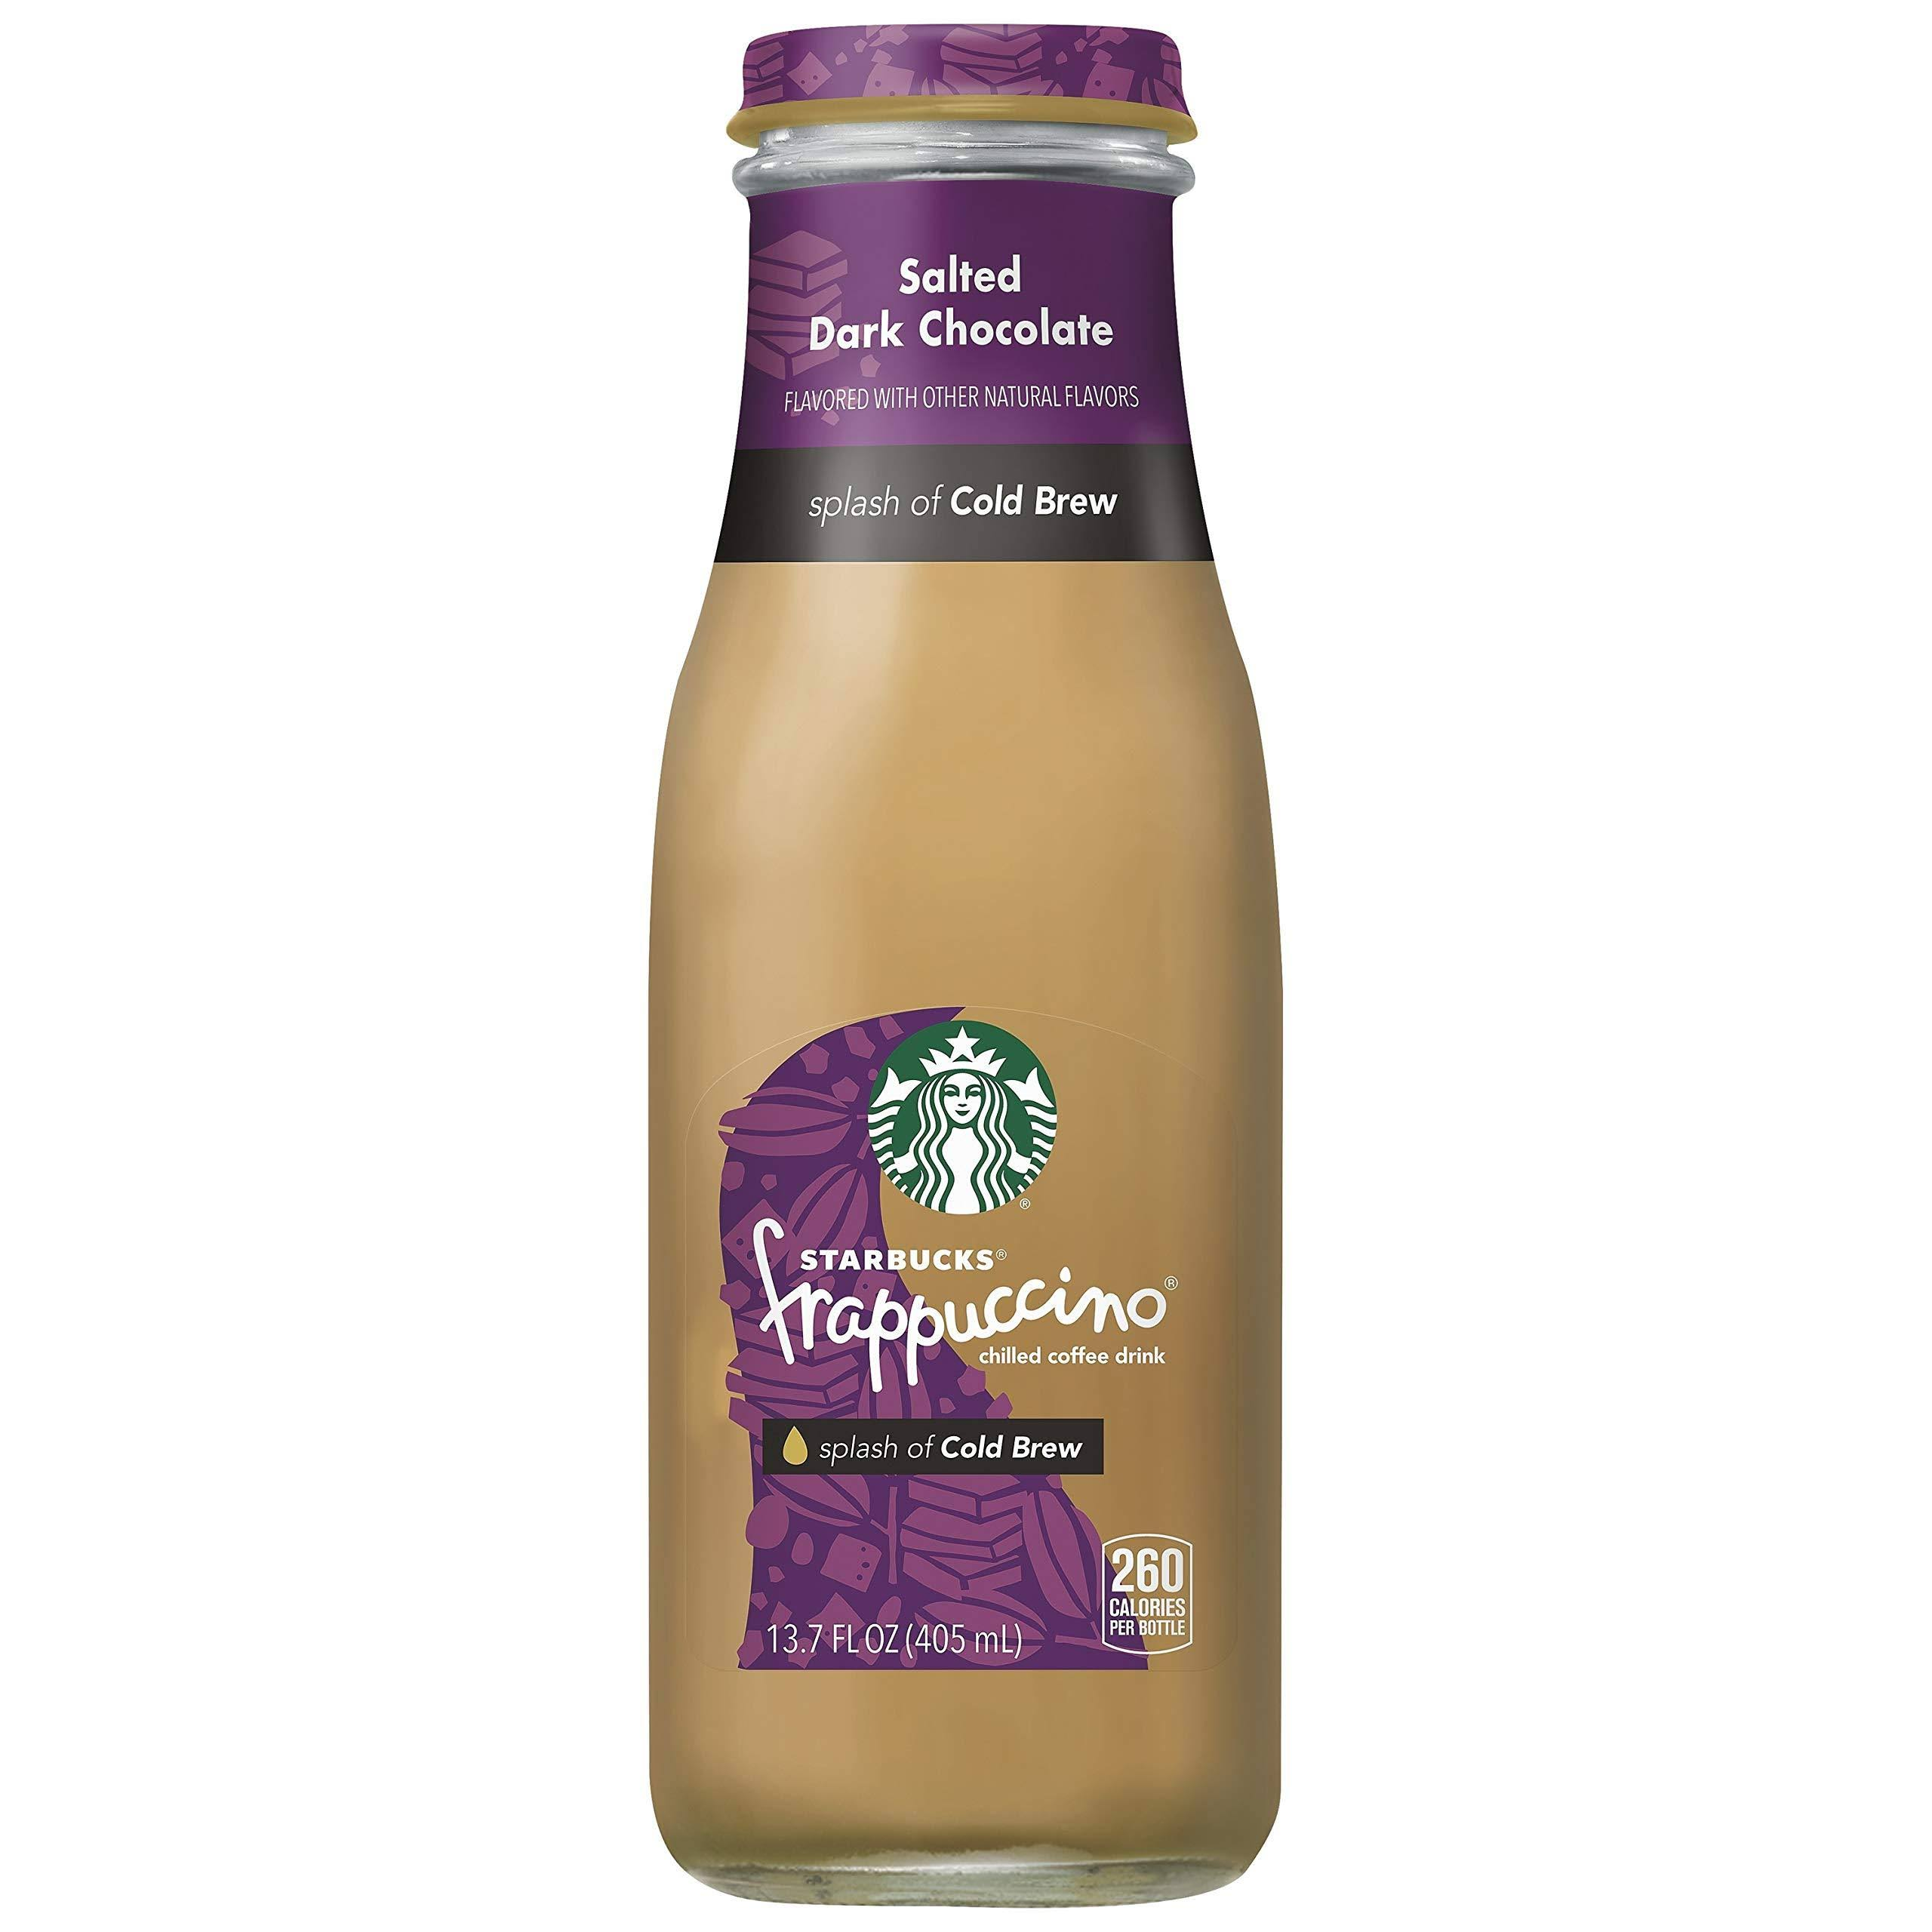 Starbucks Frappuccino Chilled Coffee Drink - Salted Dark Chocolate, 13.7oz